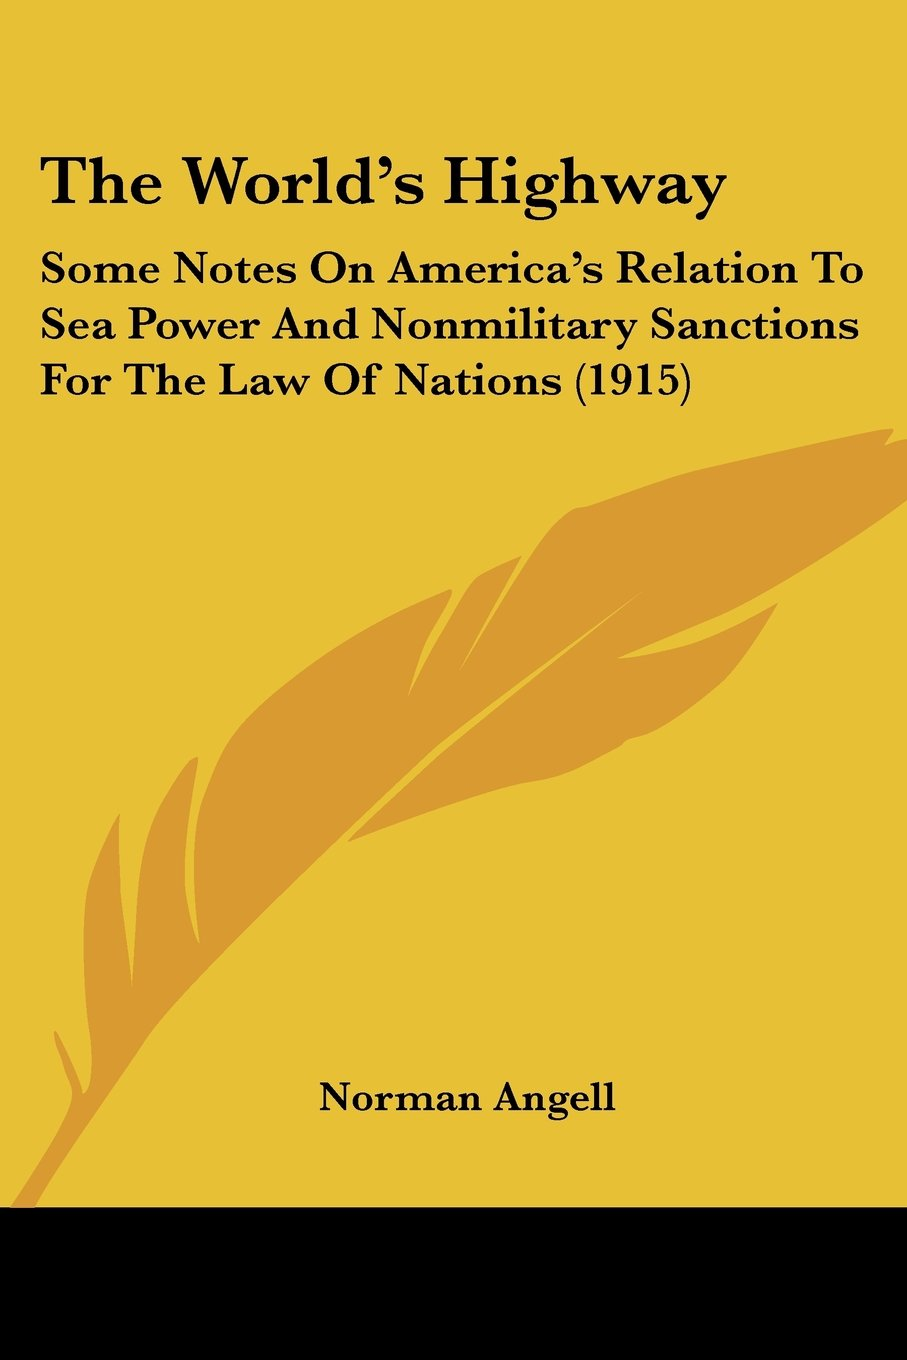 The World's Highway: Some Notes On America's Relation To Sea Power And Nonmilitary Sanctions For The Law Of Nations (1915) PDF ePub fb2 ebook